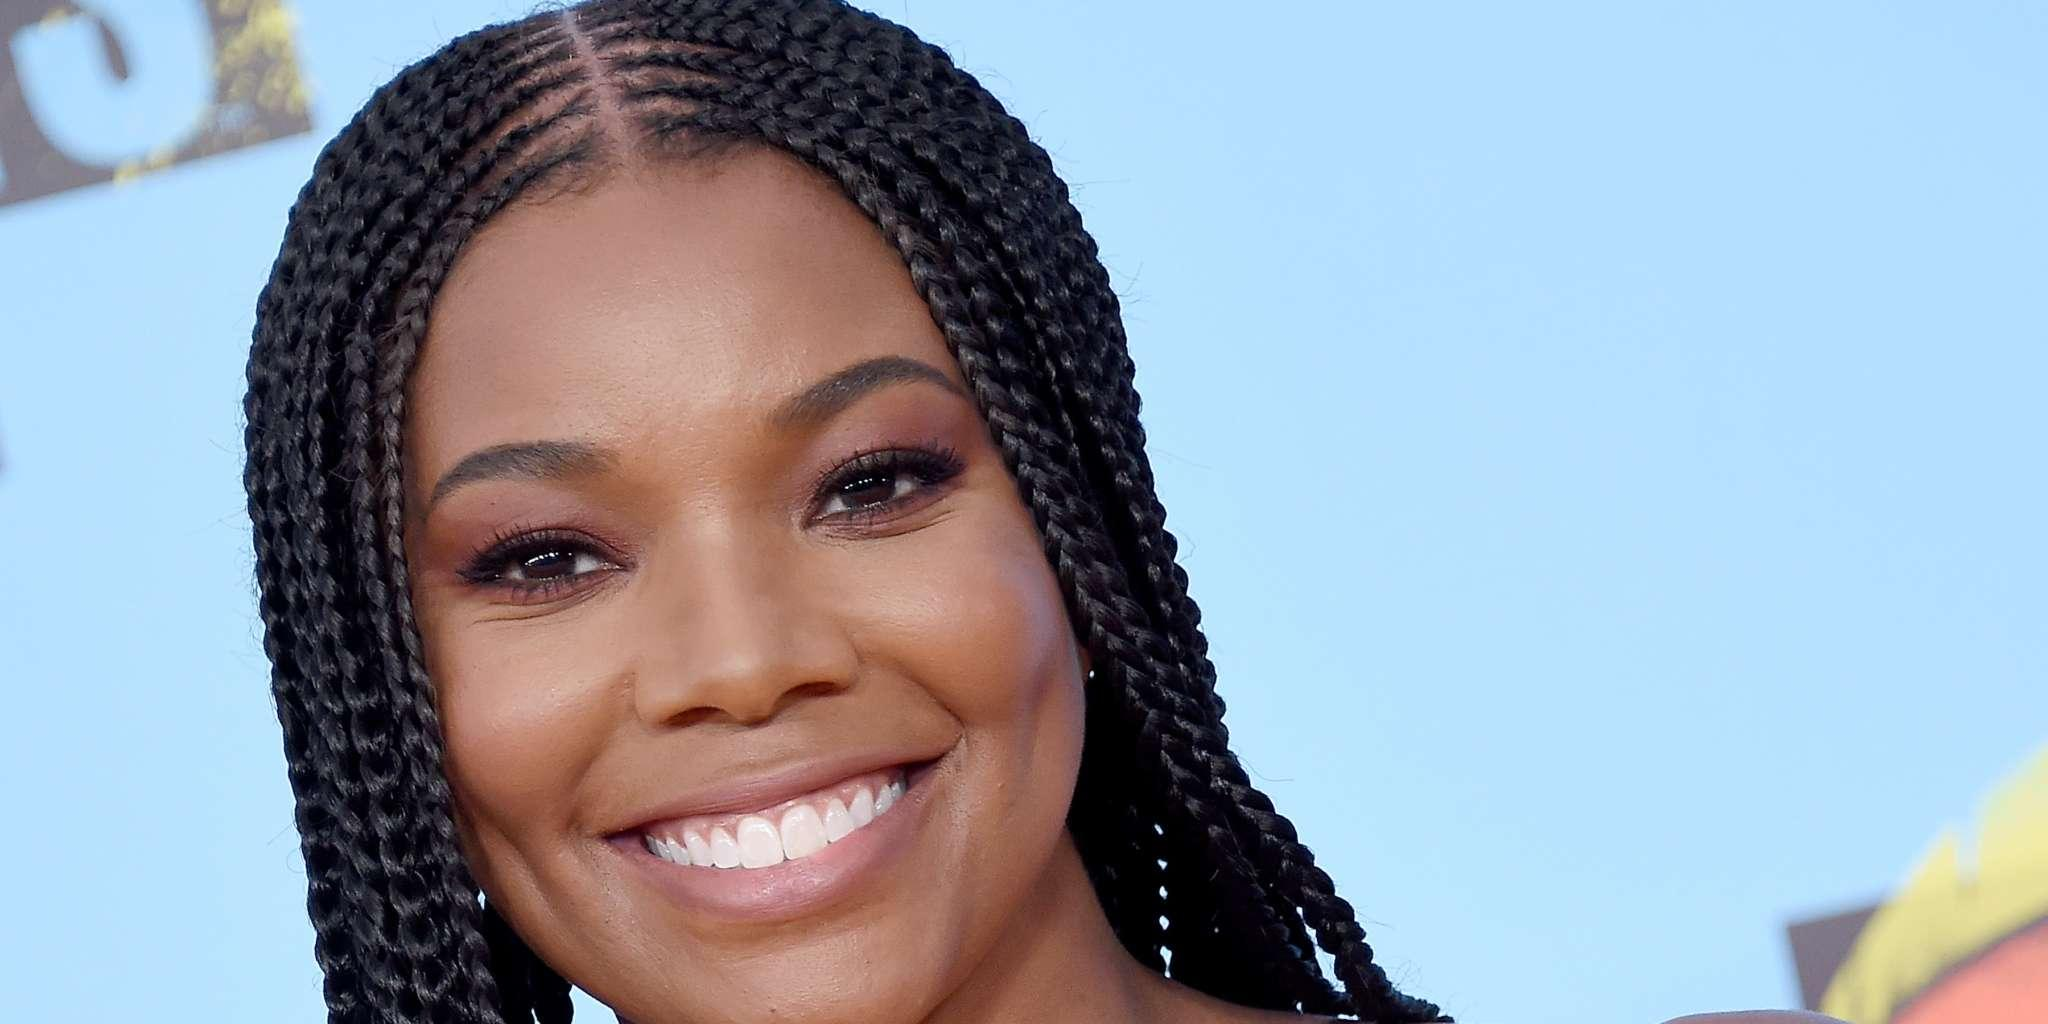 Gabrielle Union Shows Off Her Natural Hair And Fans Are Here For It